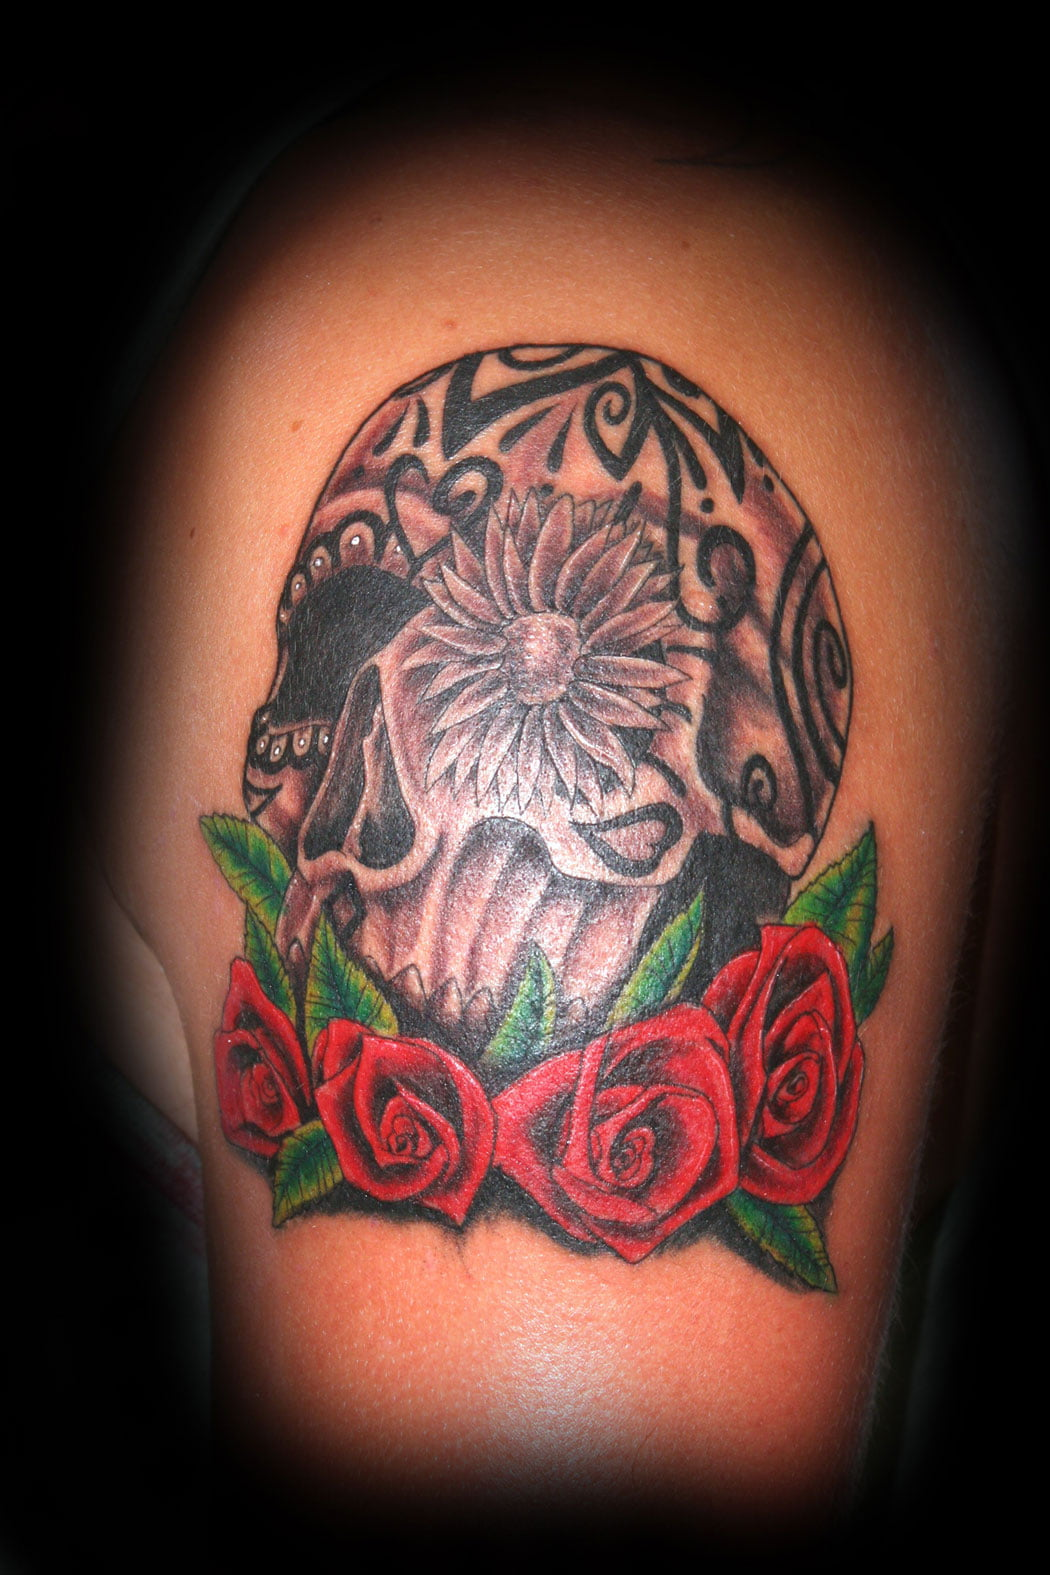 Tattoos Of Sugar Skulls And Roses